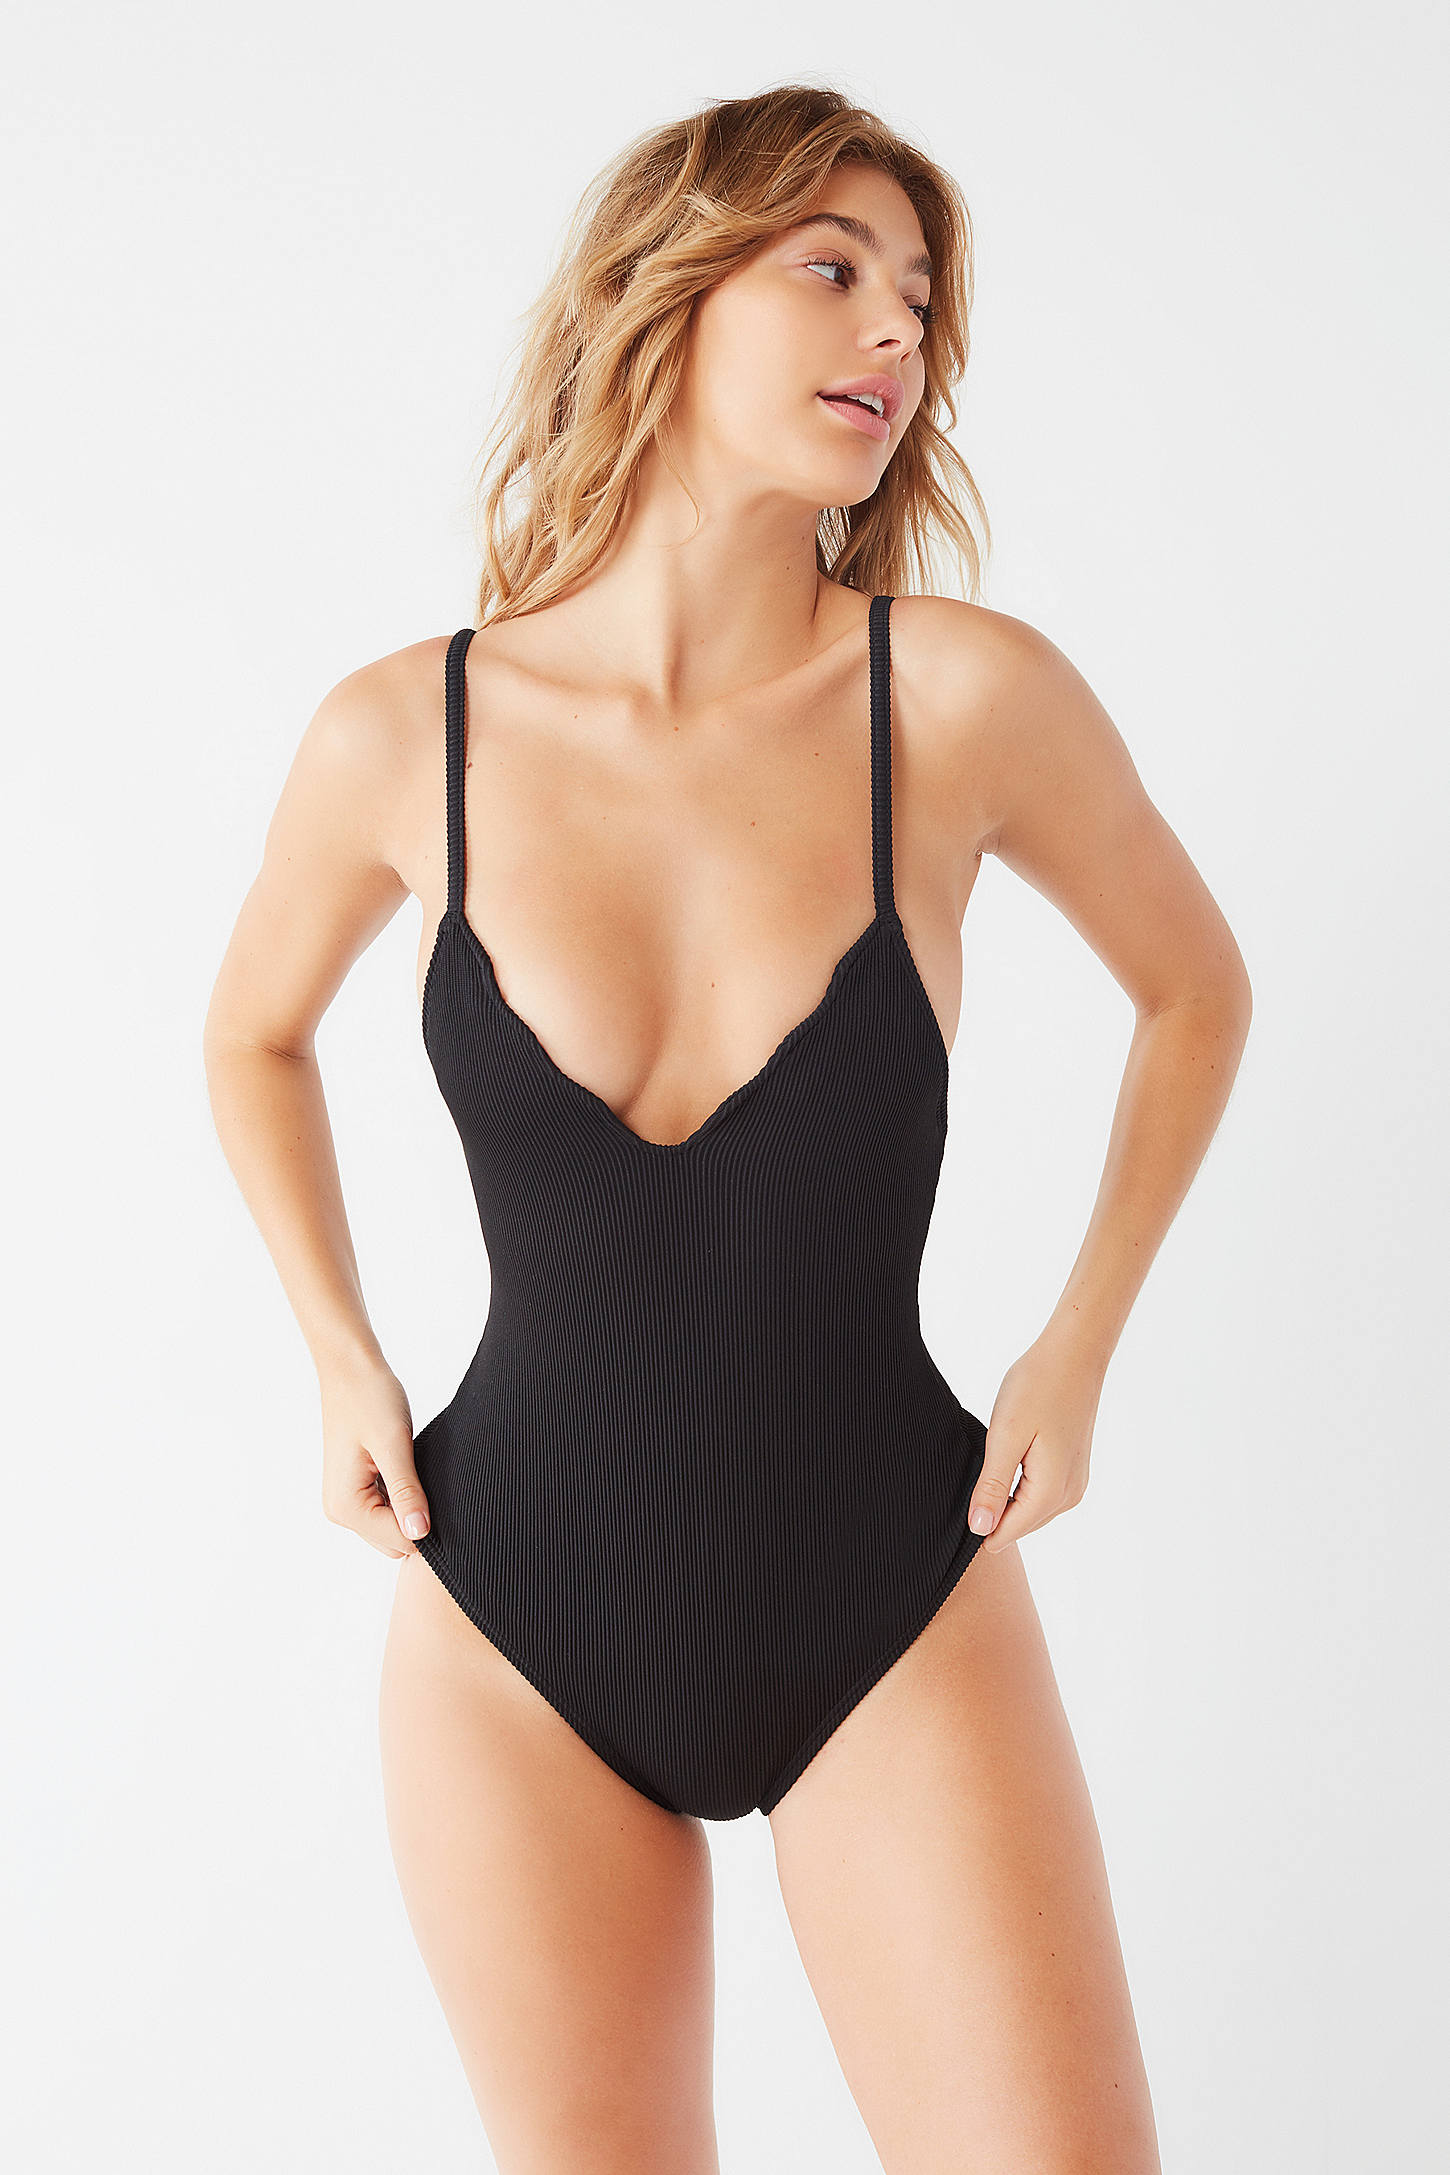 Girls with no boobs